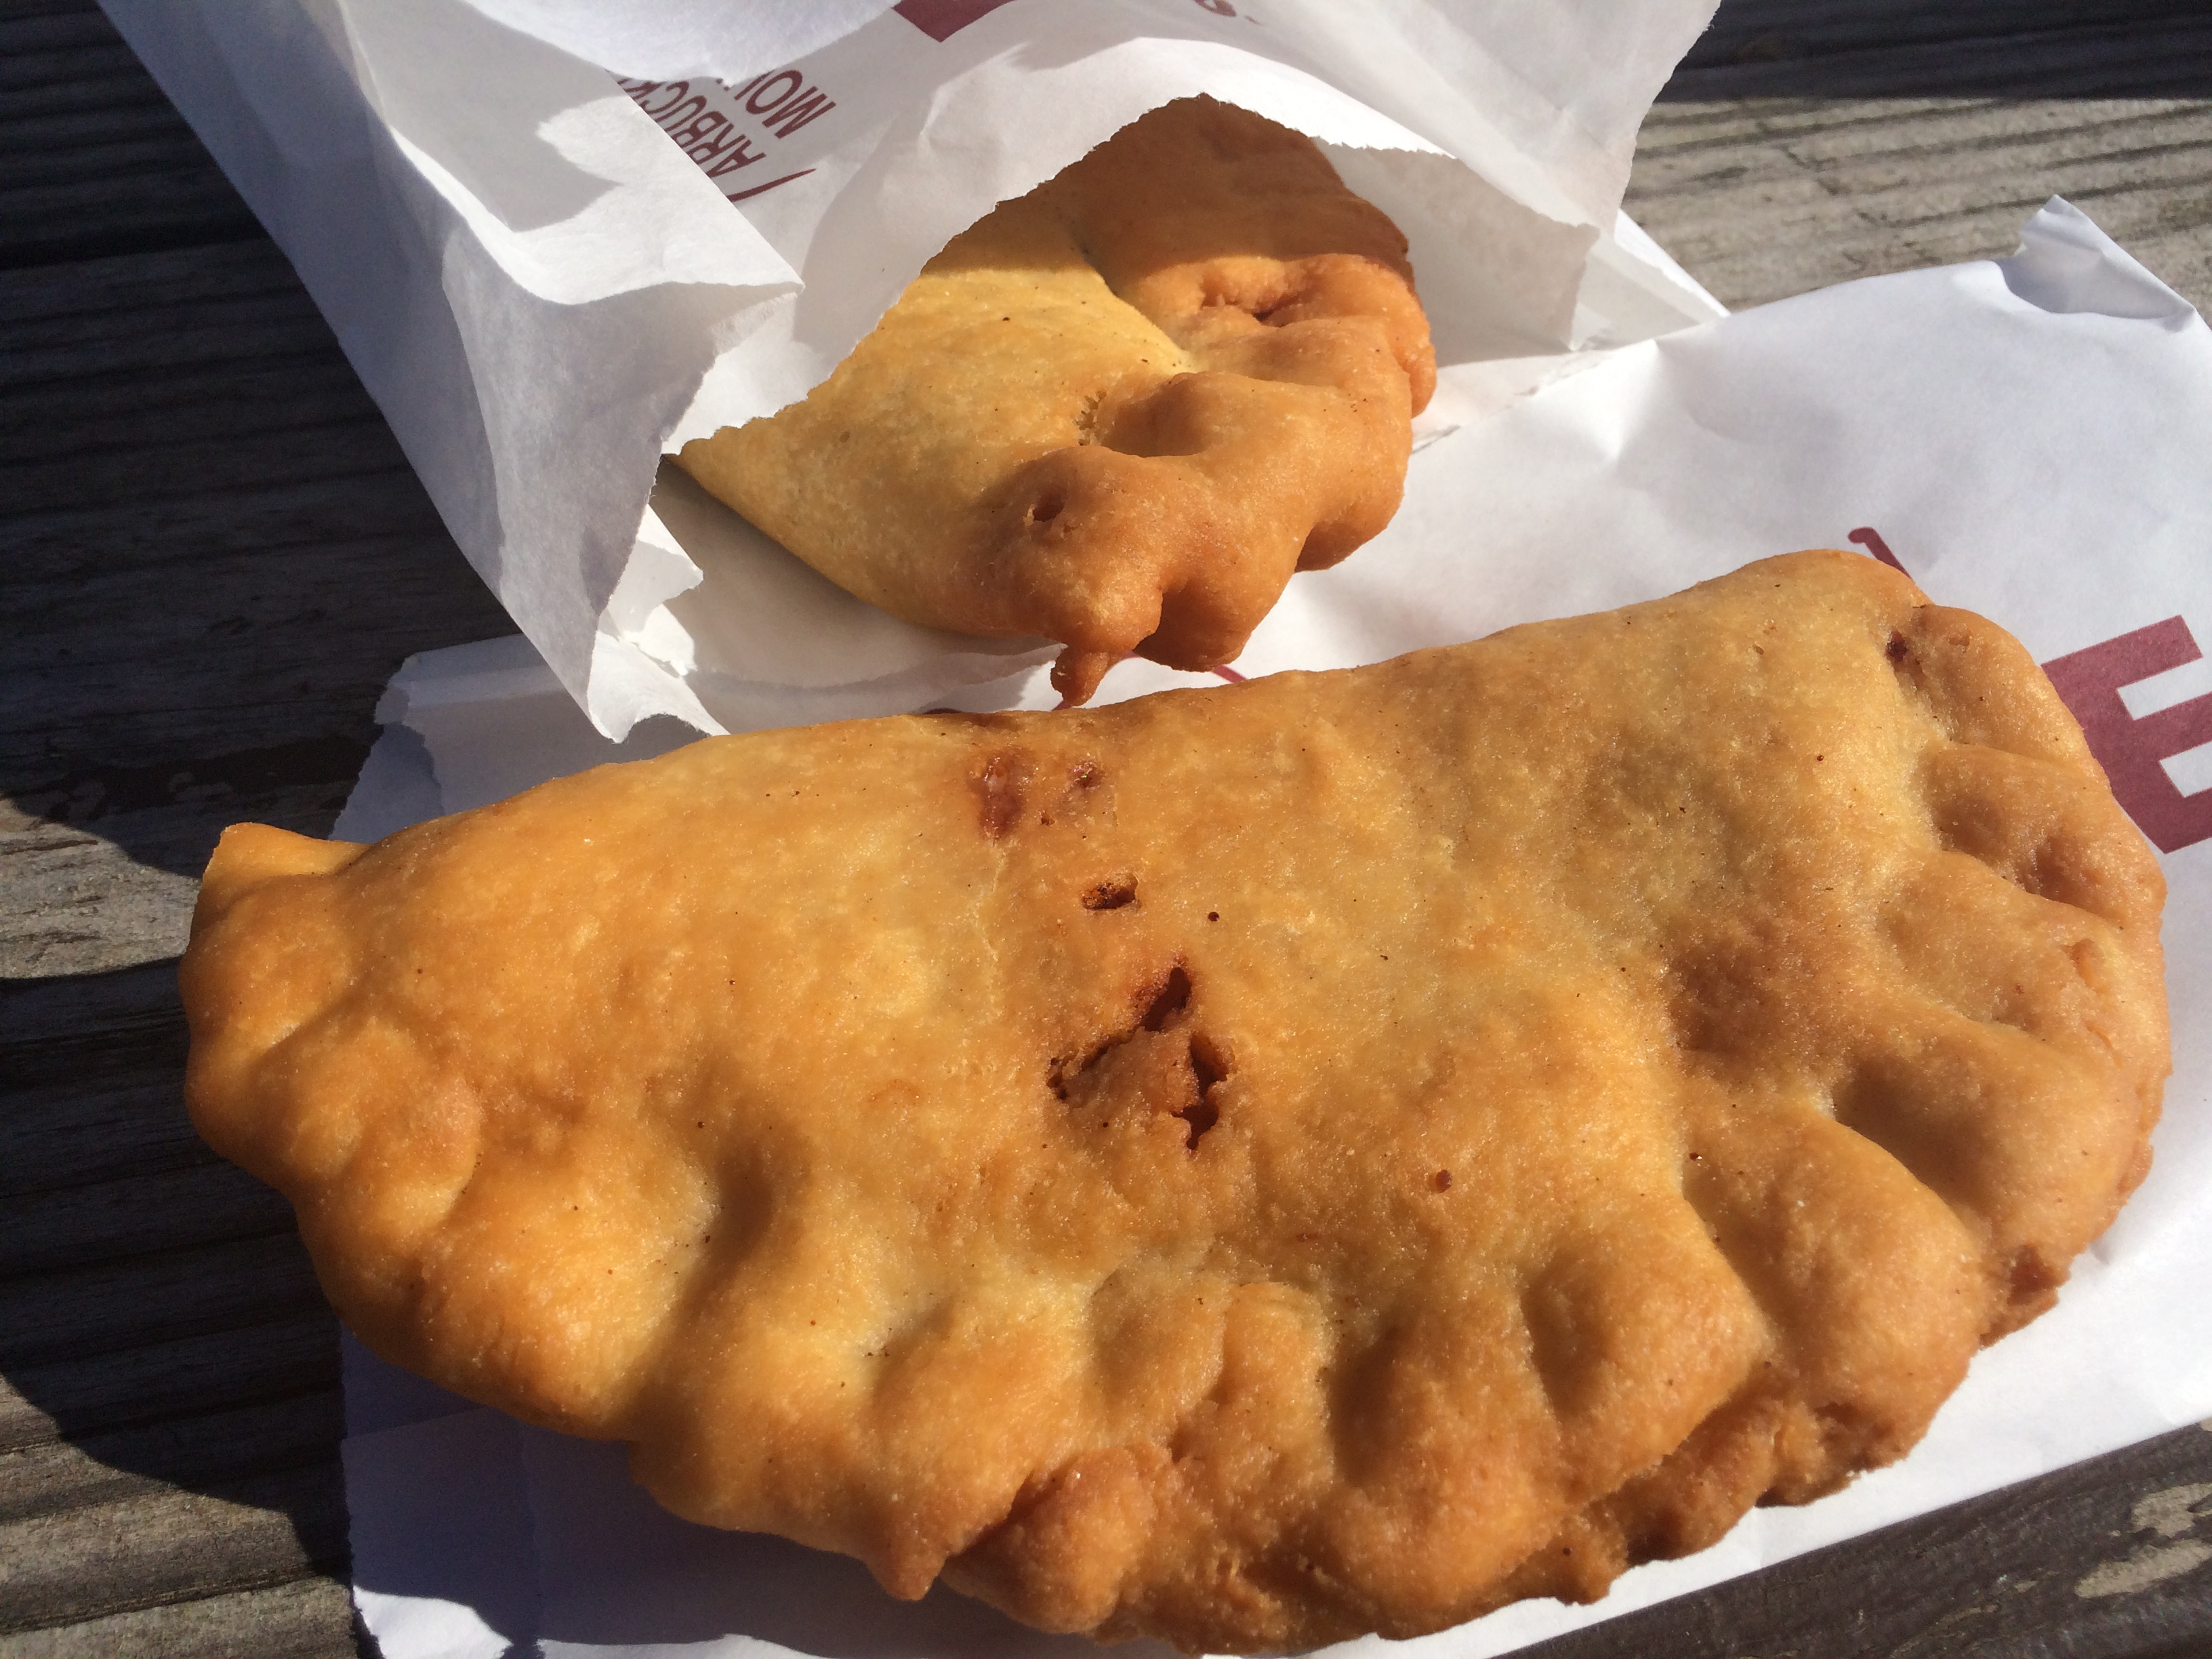 Arbuckle Mountain Fried Pies Had A Wide Selection Of Both Savory And Sweet Pies With Fillings Such As Breakfast Pizza Apple Chocolate Potato